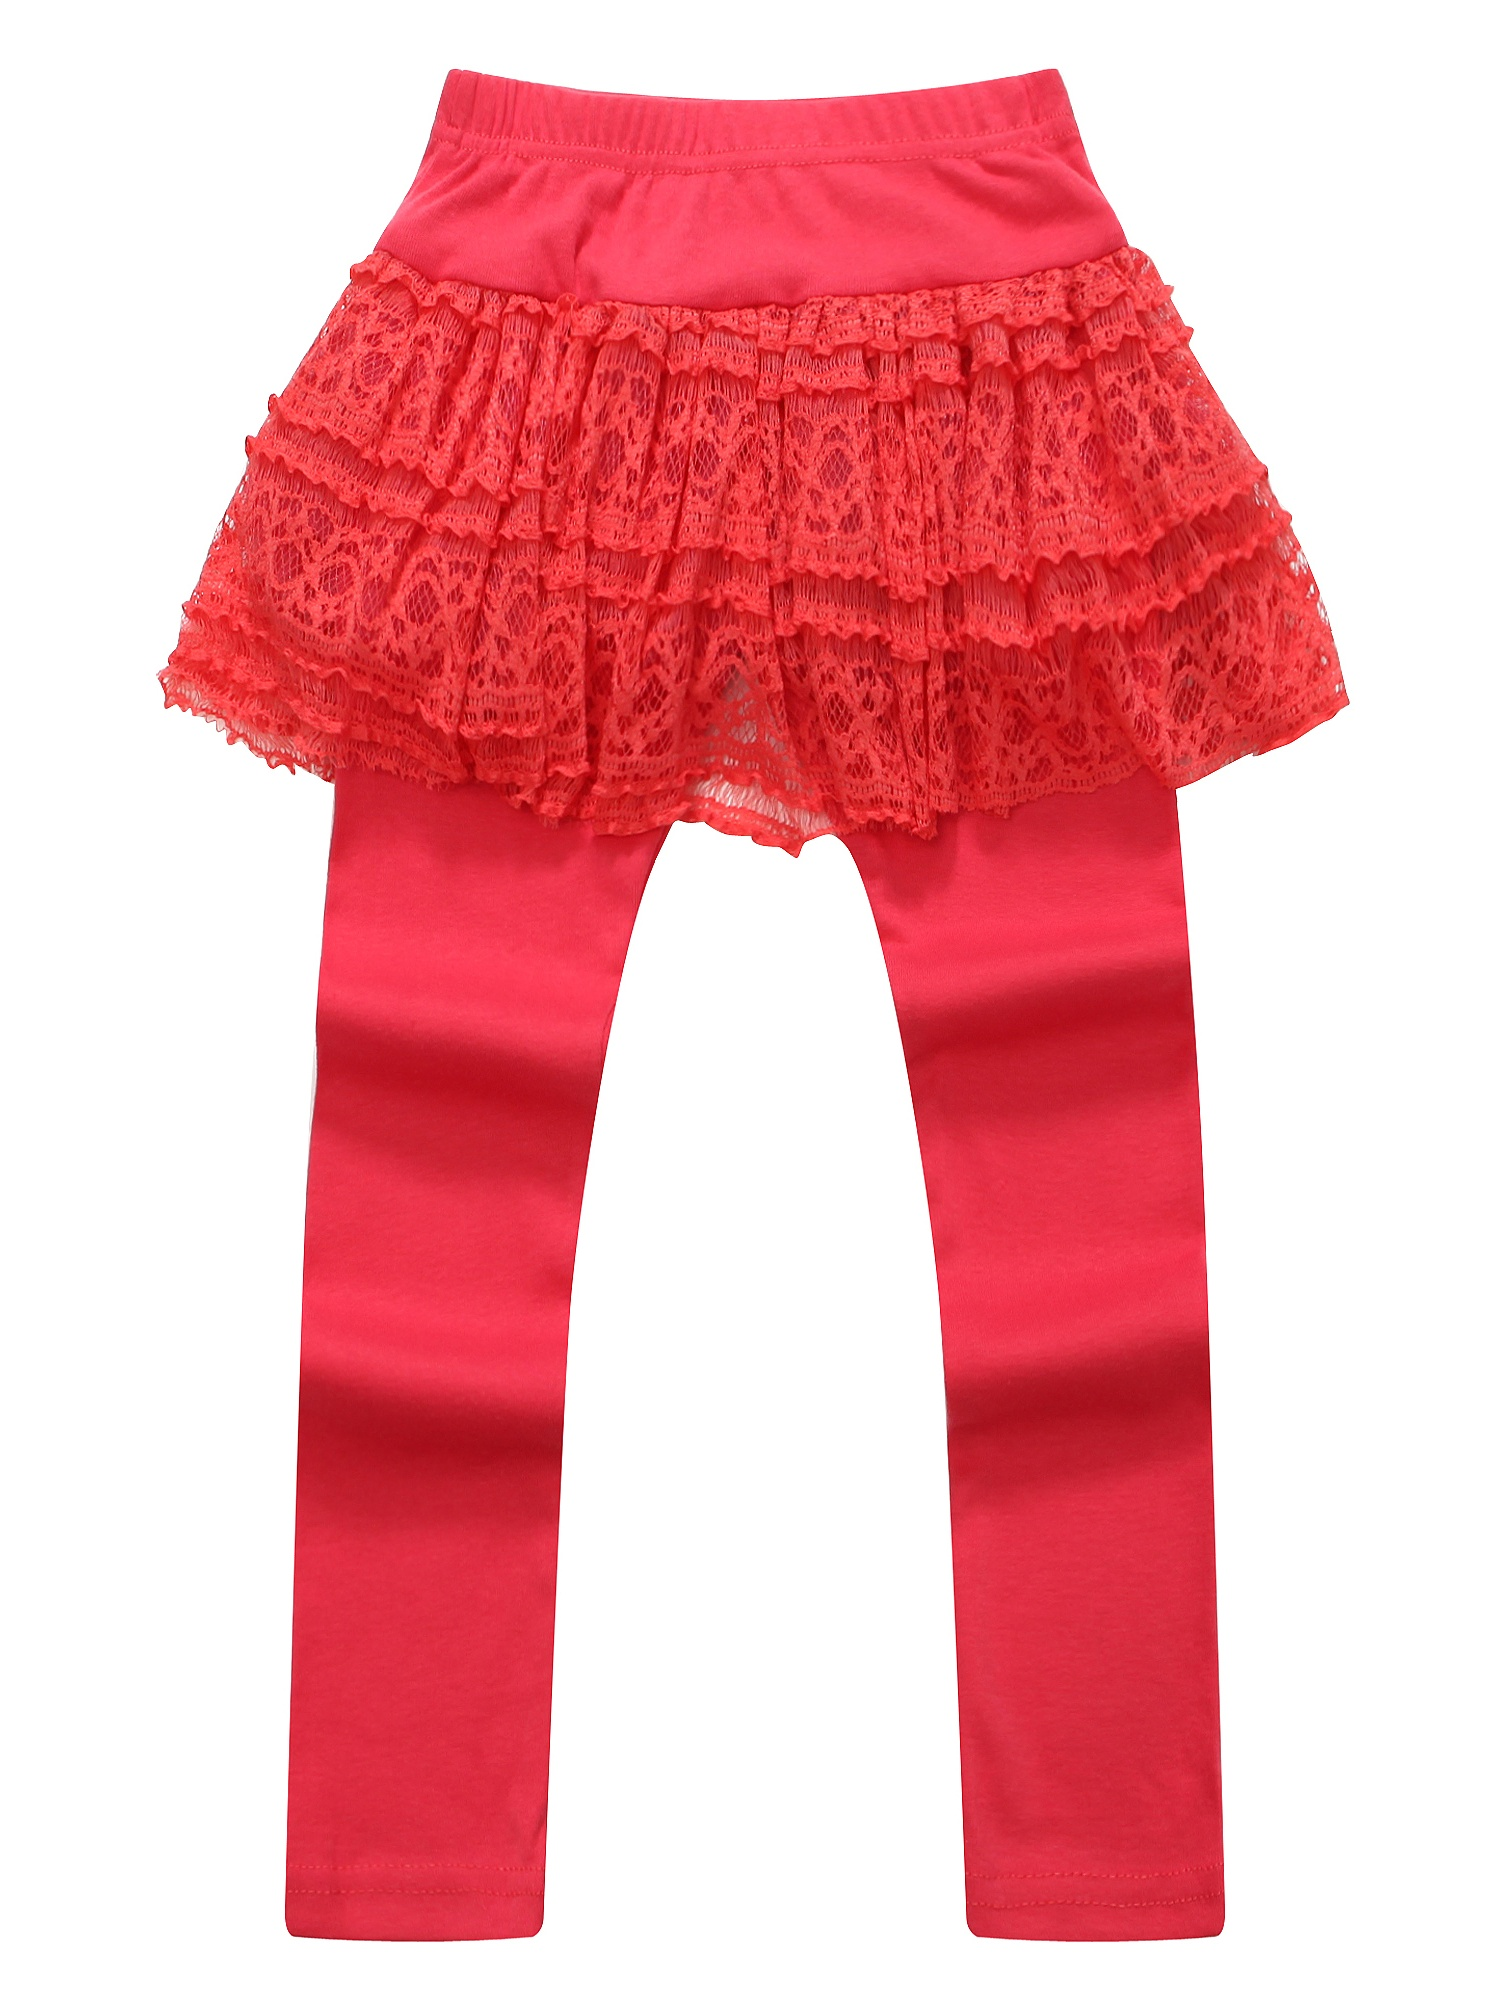 Richie House Girls' Leggings with Lace Tutu-style Skirt RH0882